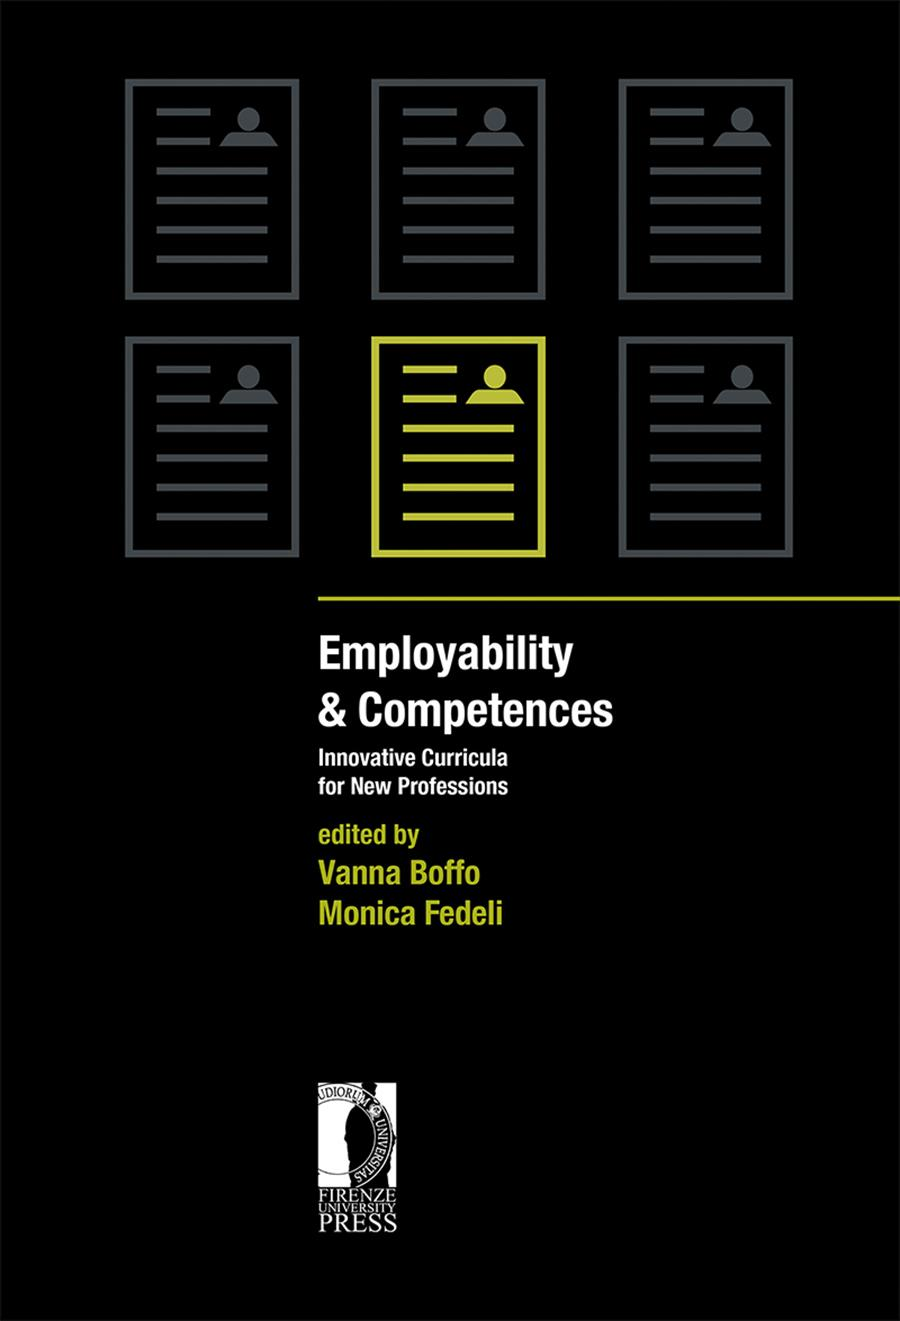 Employability & Competences